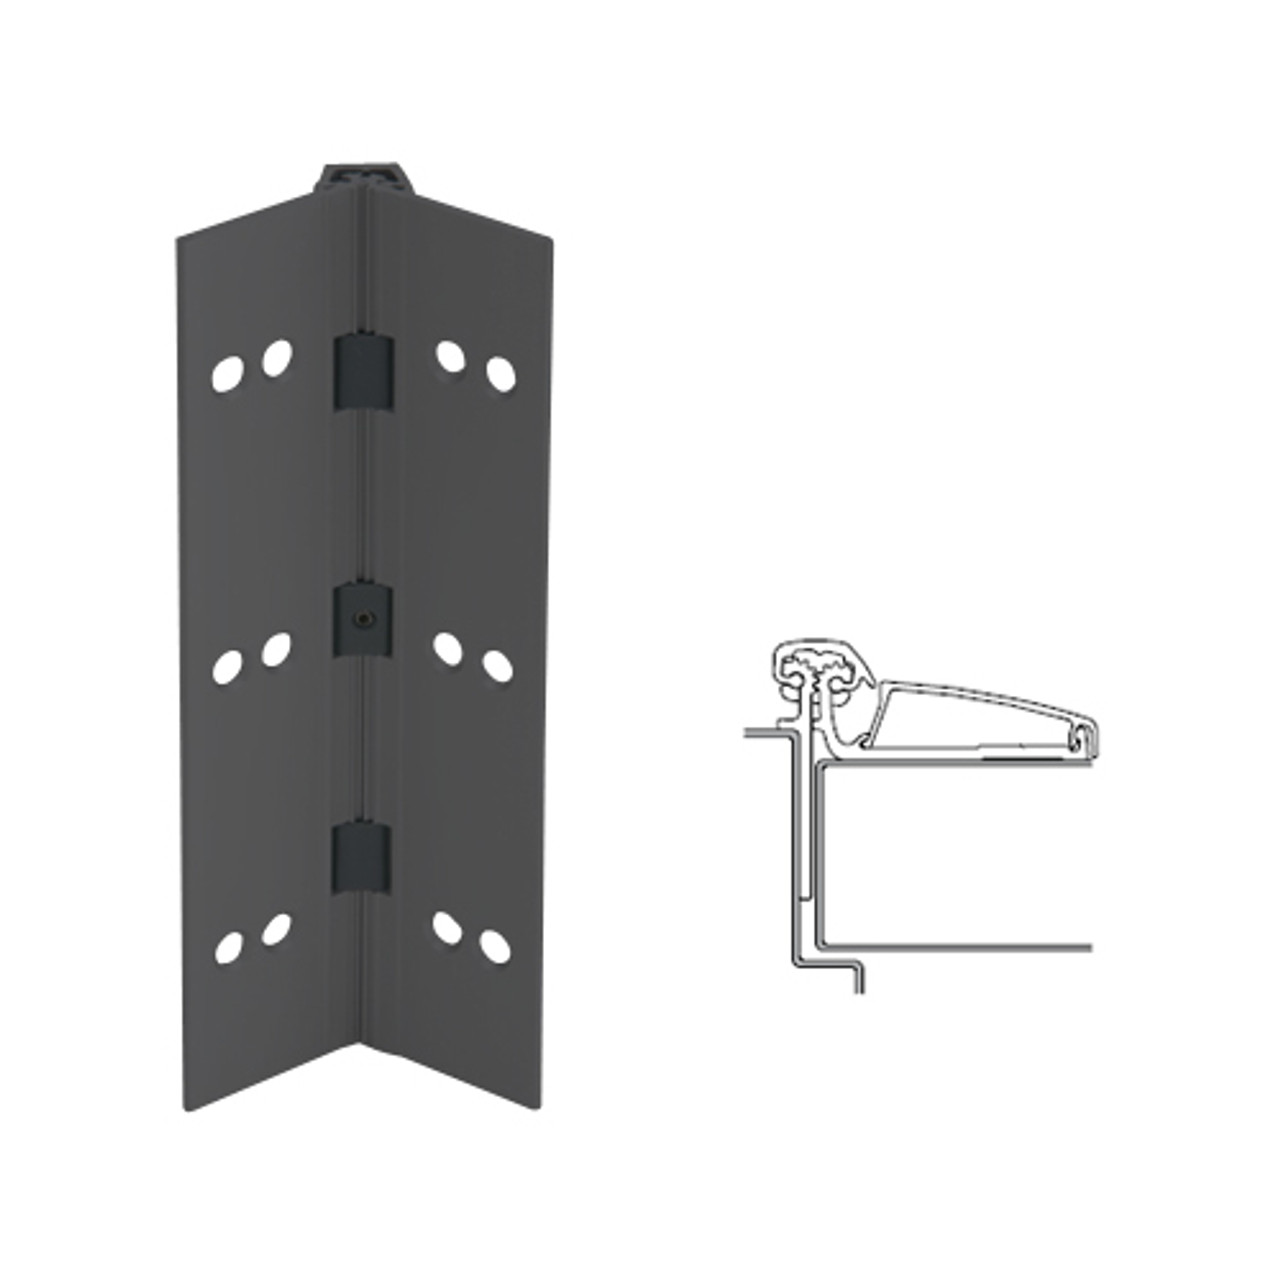 045XY-315AN-120-TF IVES Adjustable Half Surface Continuous Geared Hinges with Thread Forming Screws in Anodized Black